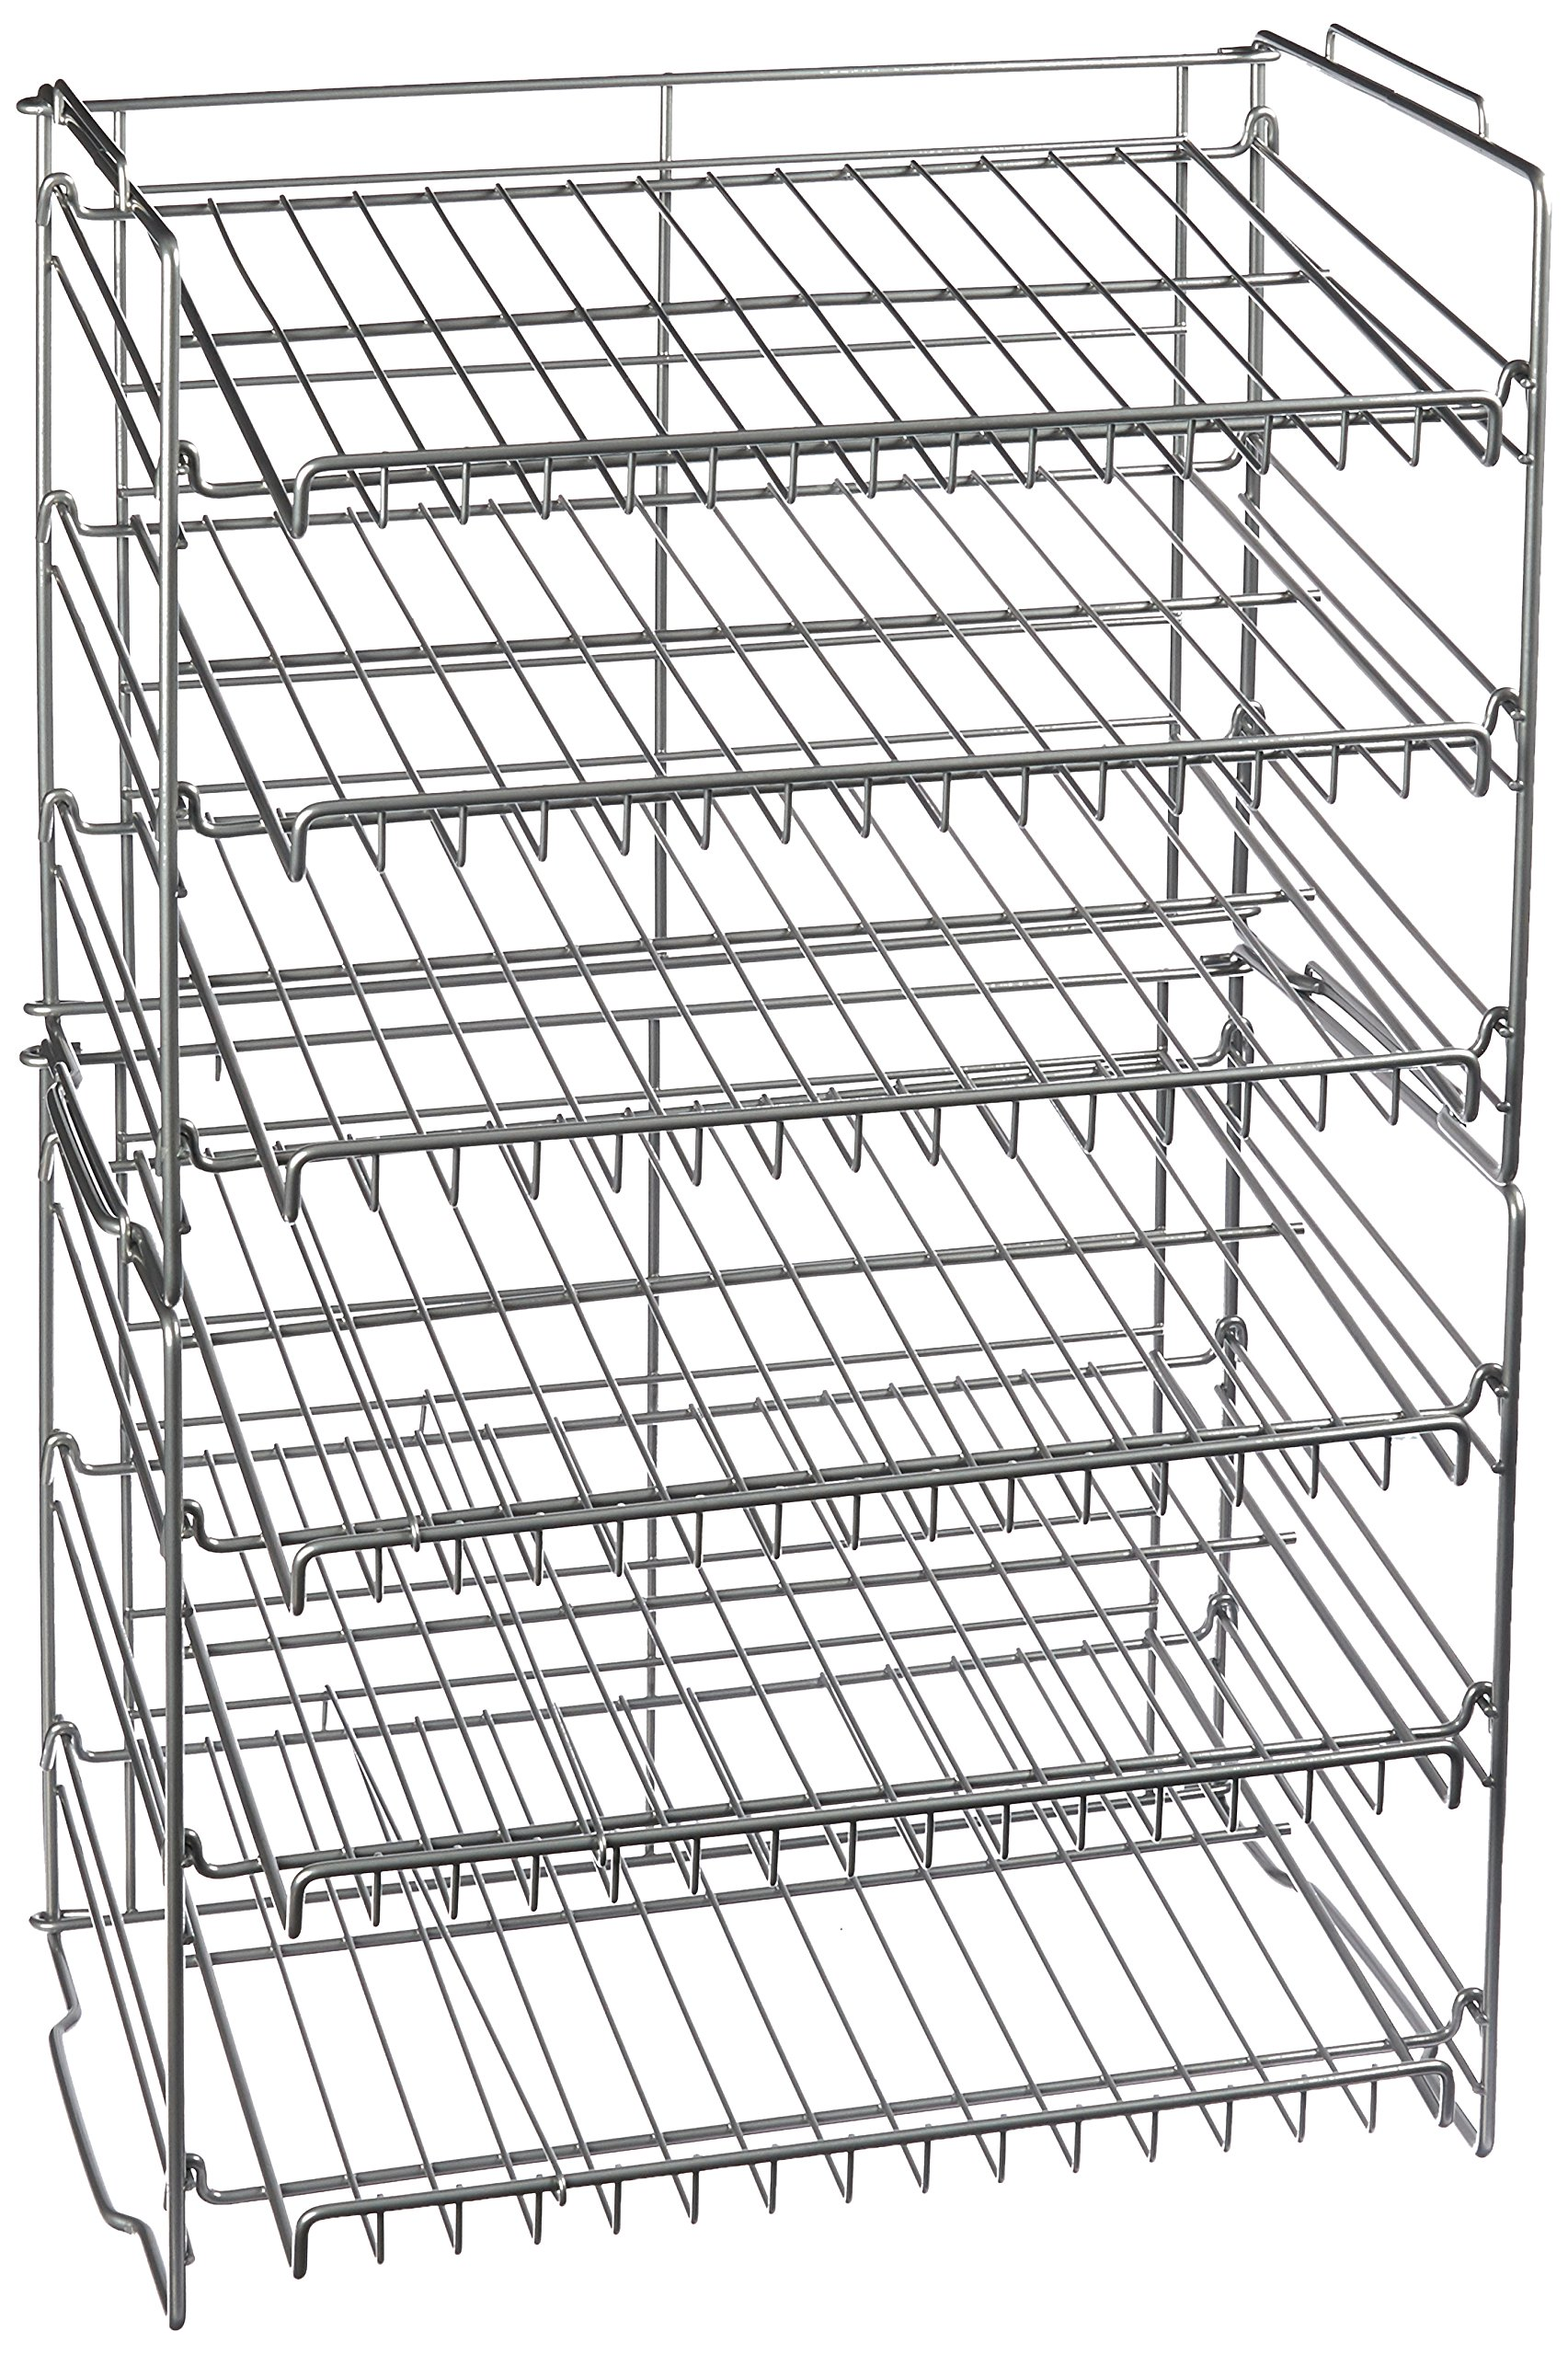 Atlantic Gravity-Fed Compact Double Canrack - Kitchen Organizer, Durable Steel Construction, Stackable or Side-by-Side, PN23235595 in Silver by Atlantic